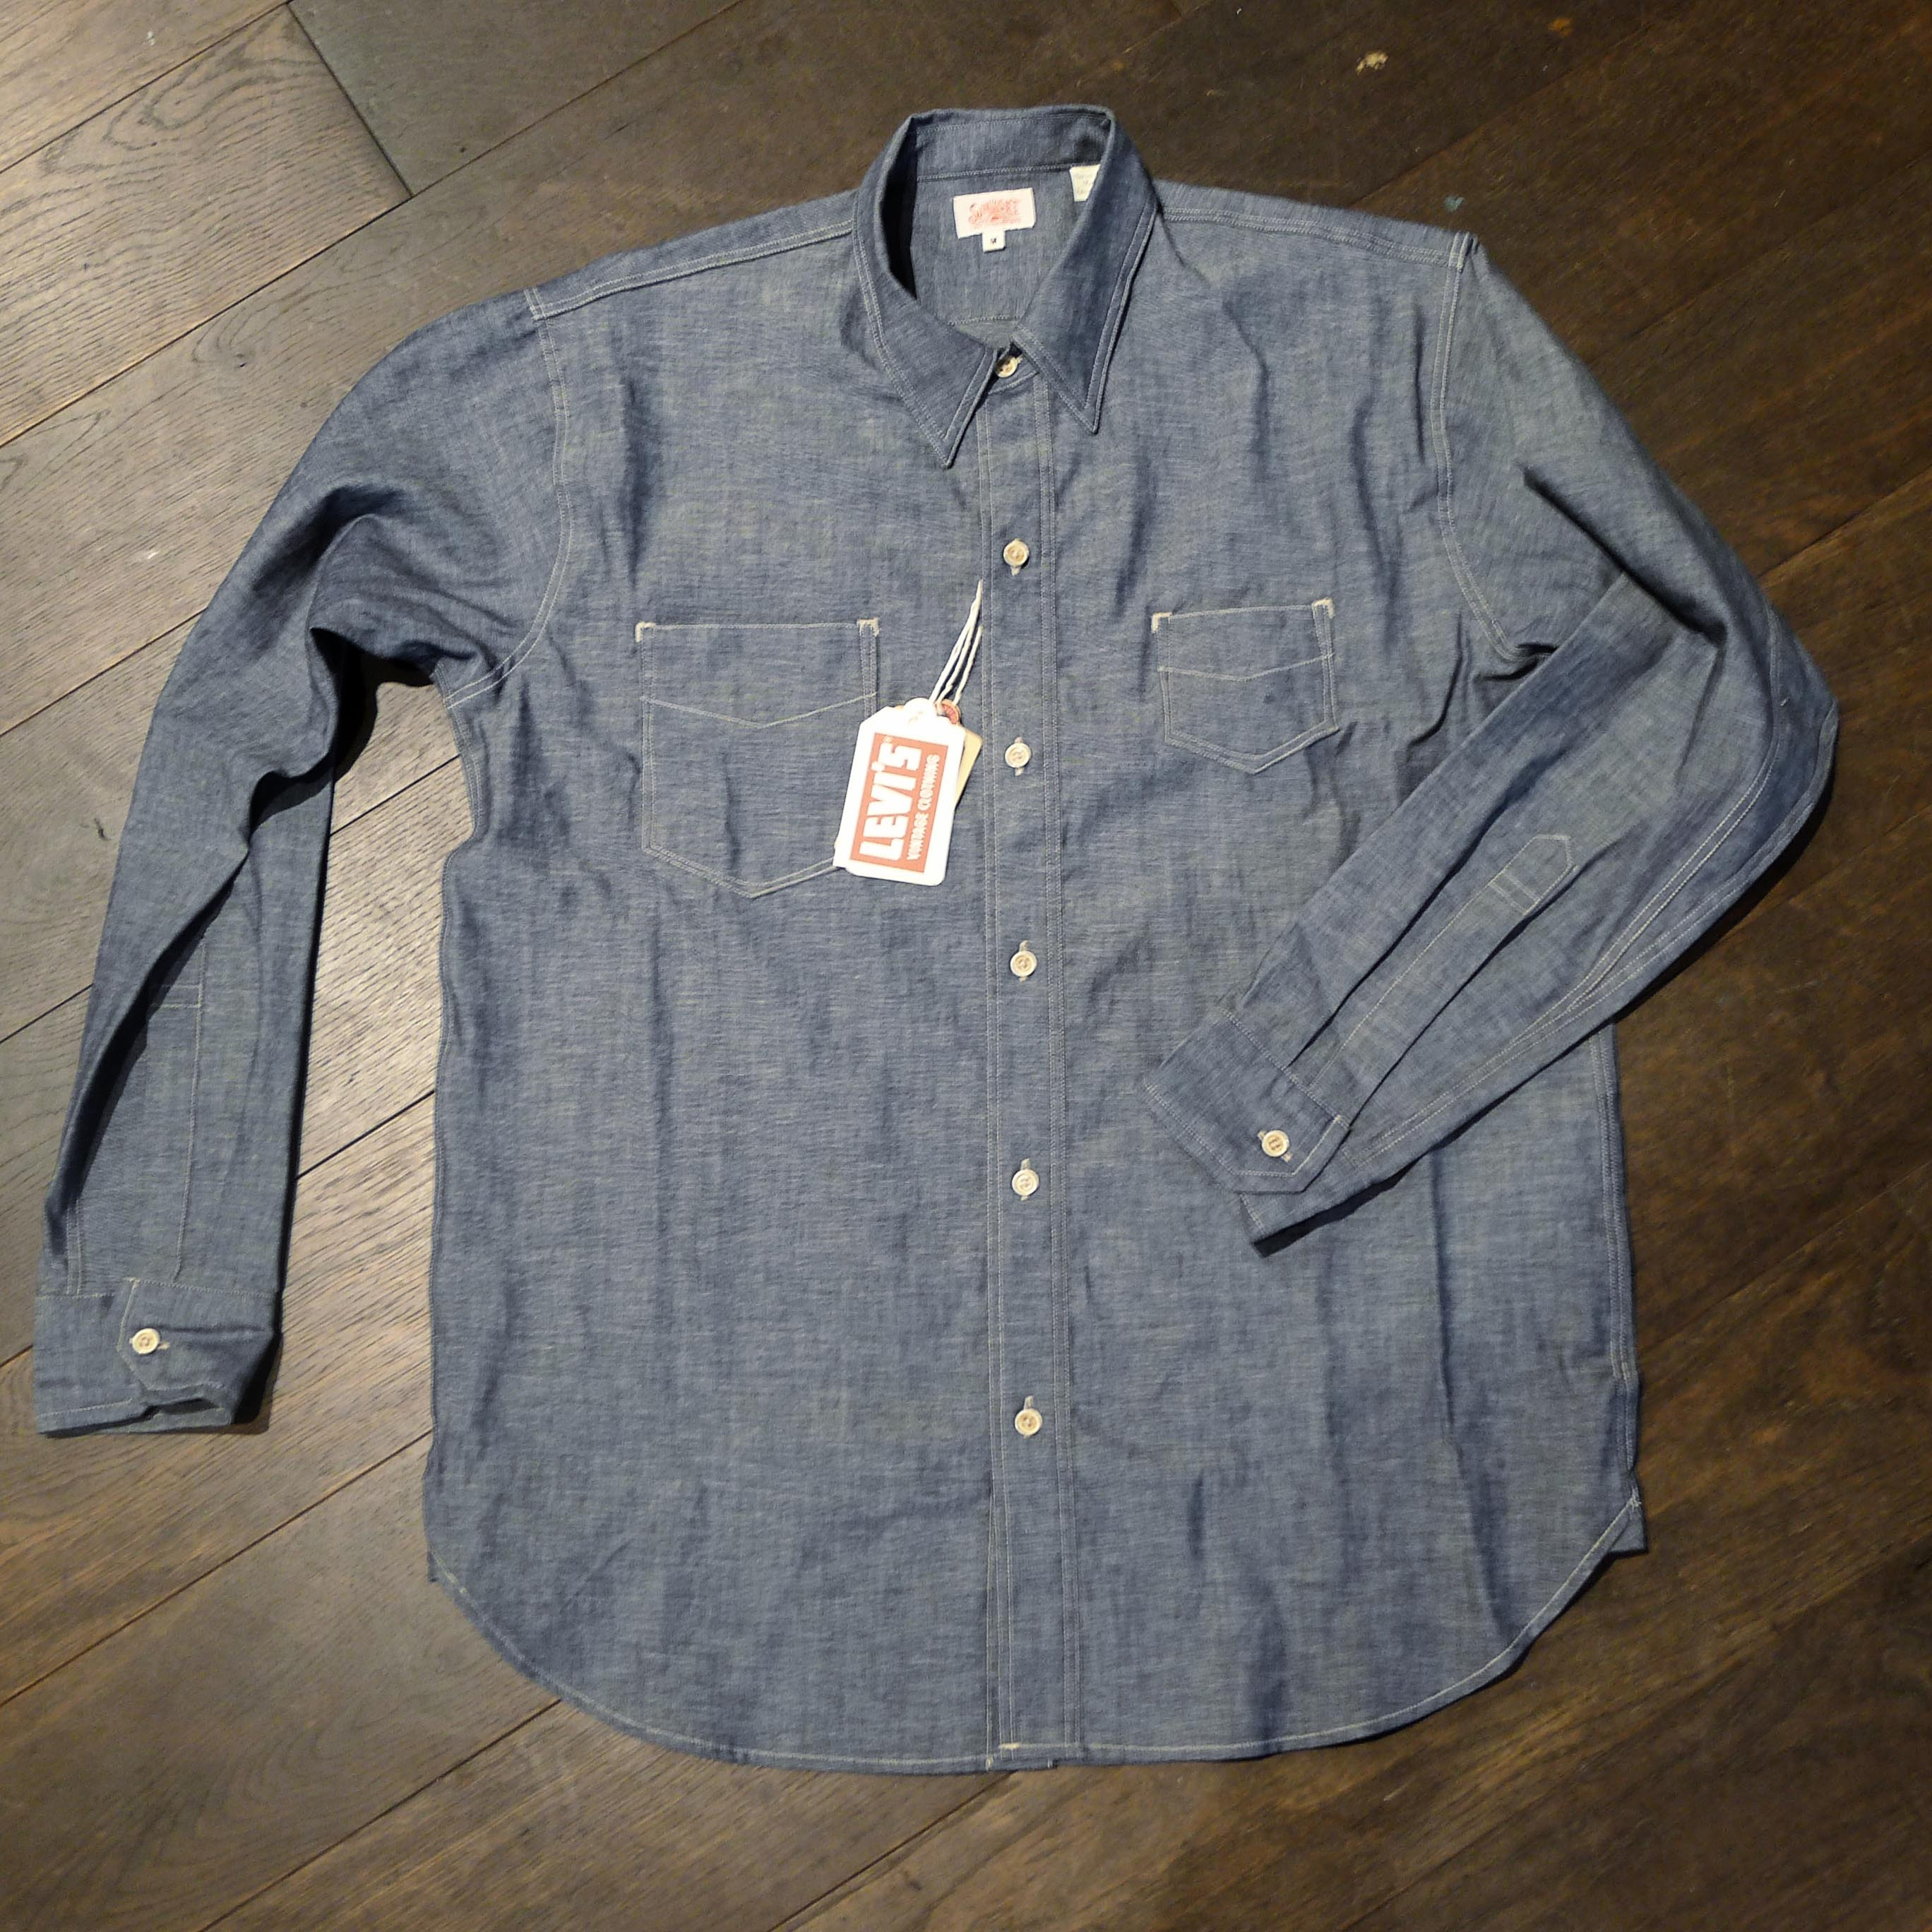 levis-vintage-chambray-sunset-shirt-01